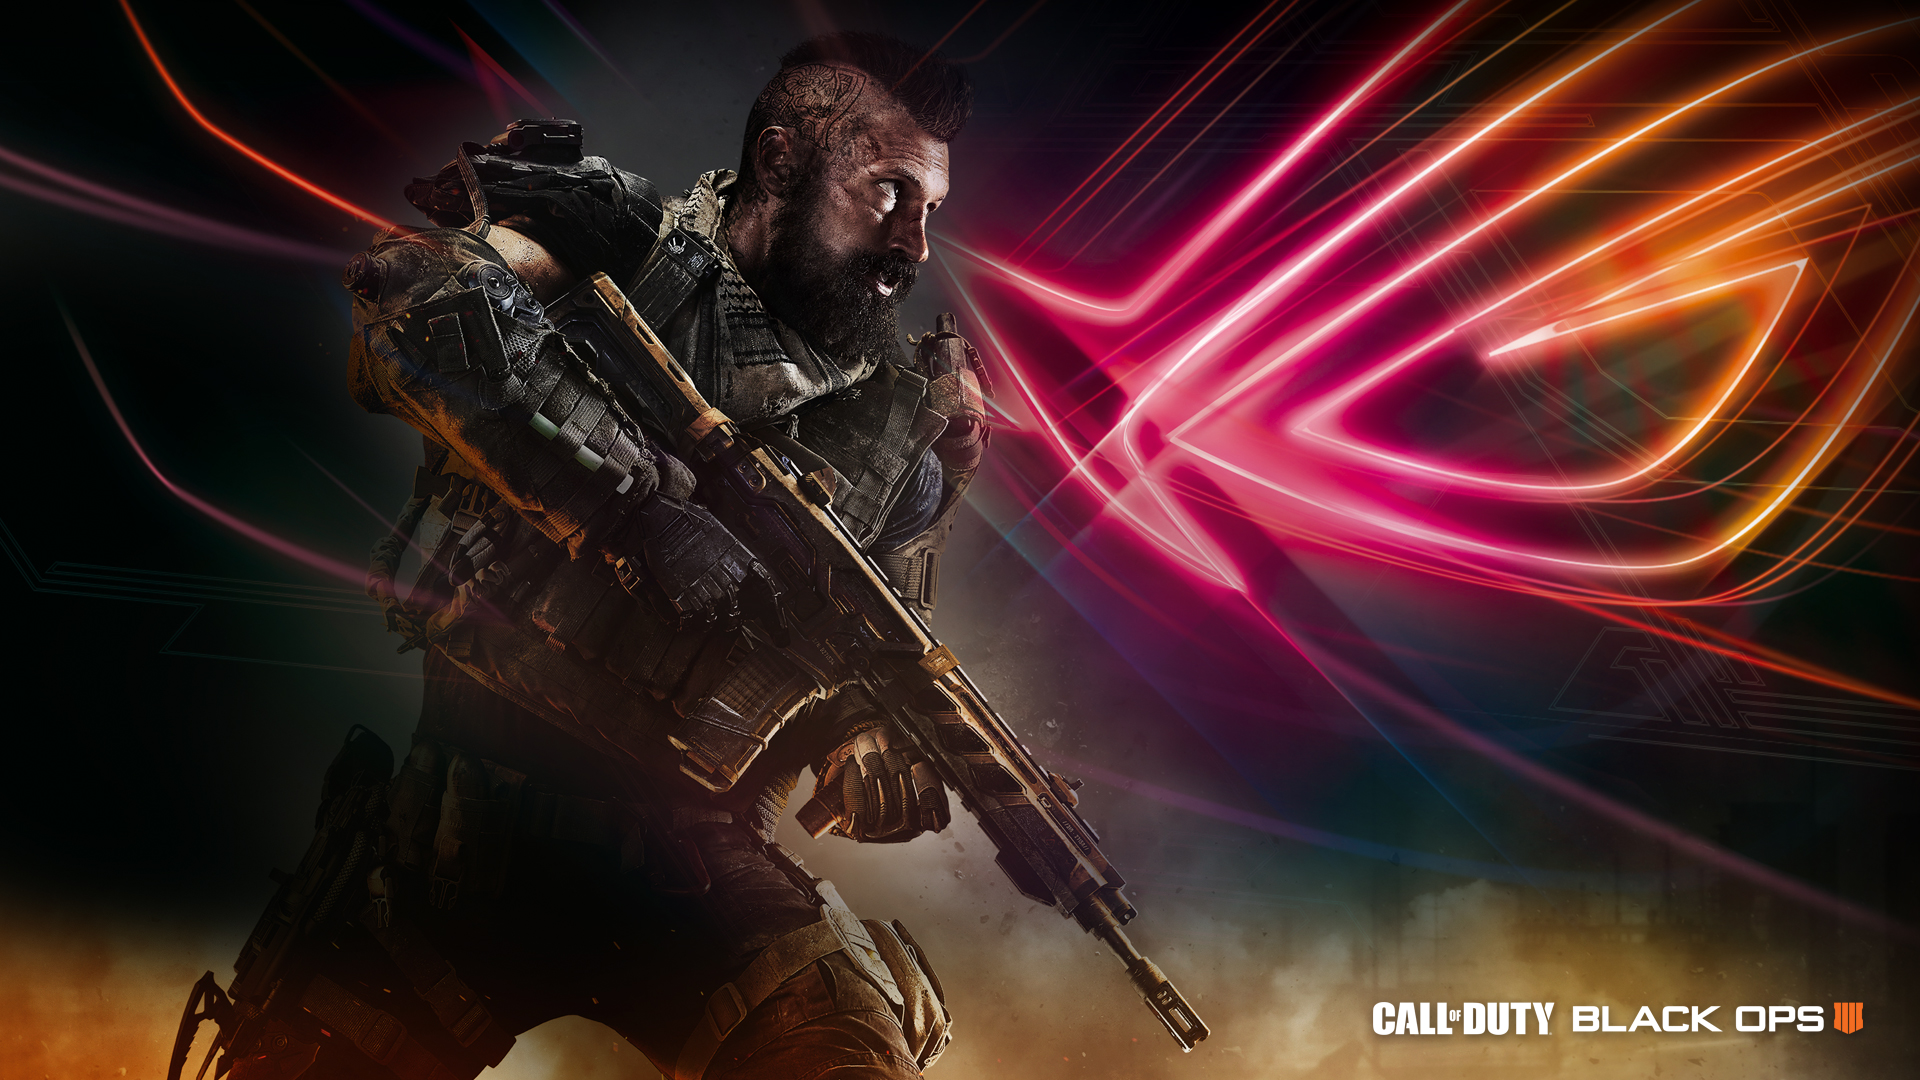 Call Of Duty Black Ops Wallpapers Posted By John Mercado